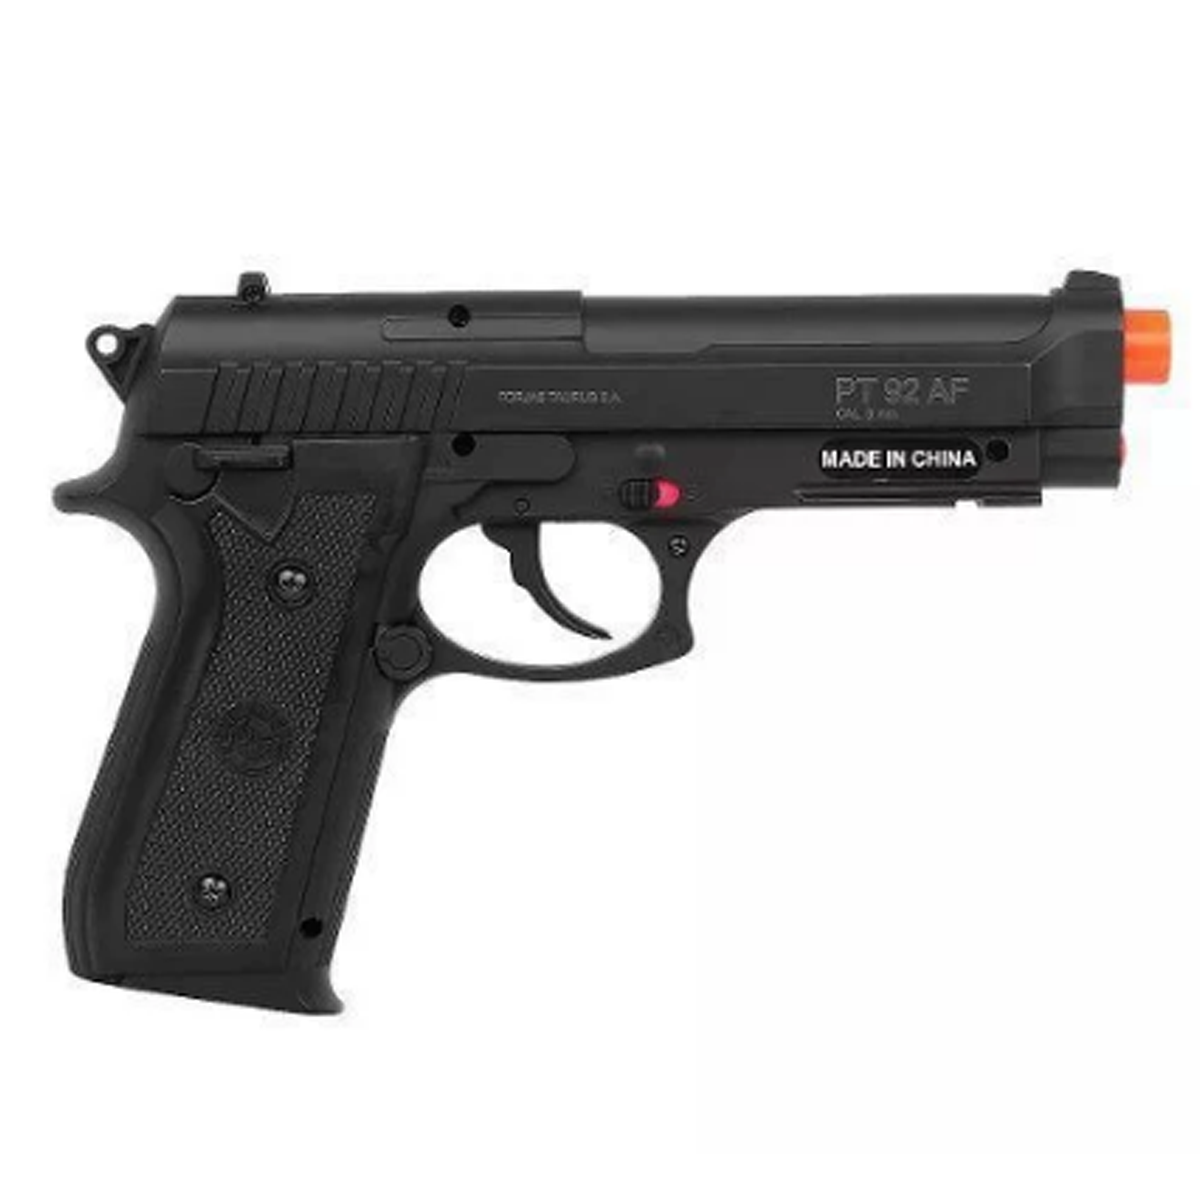 Pistola Airsoft Co2 Taurus Pt92 + Case + 5 cilindros Co2 + 2000bbs